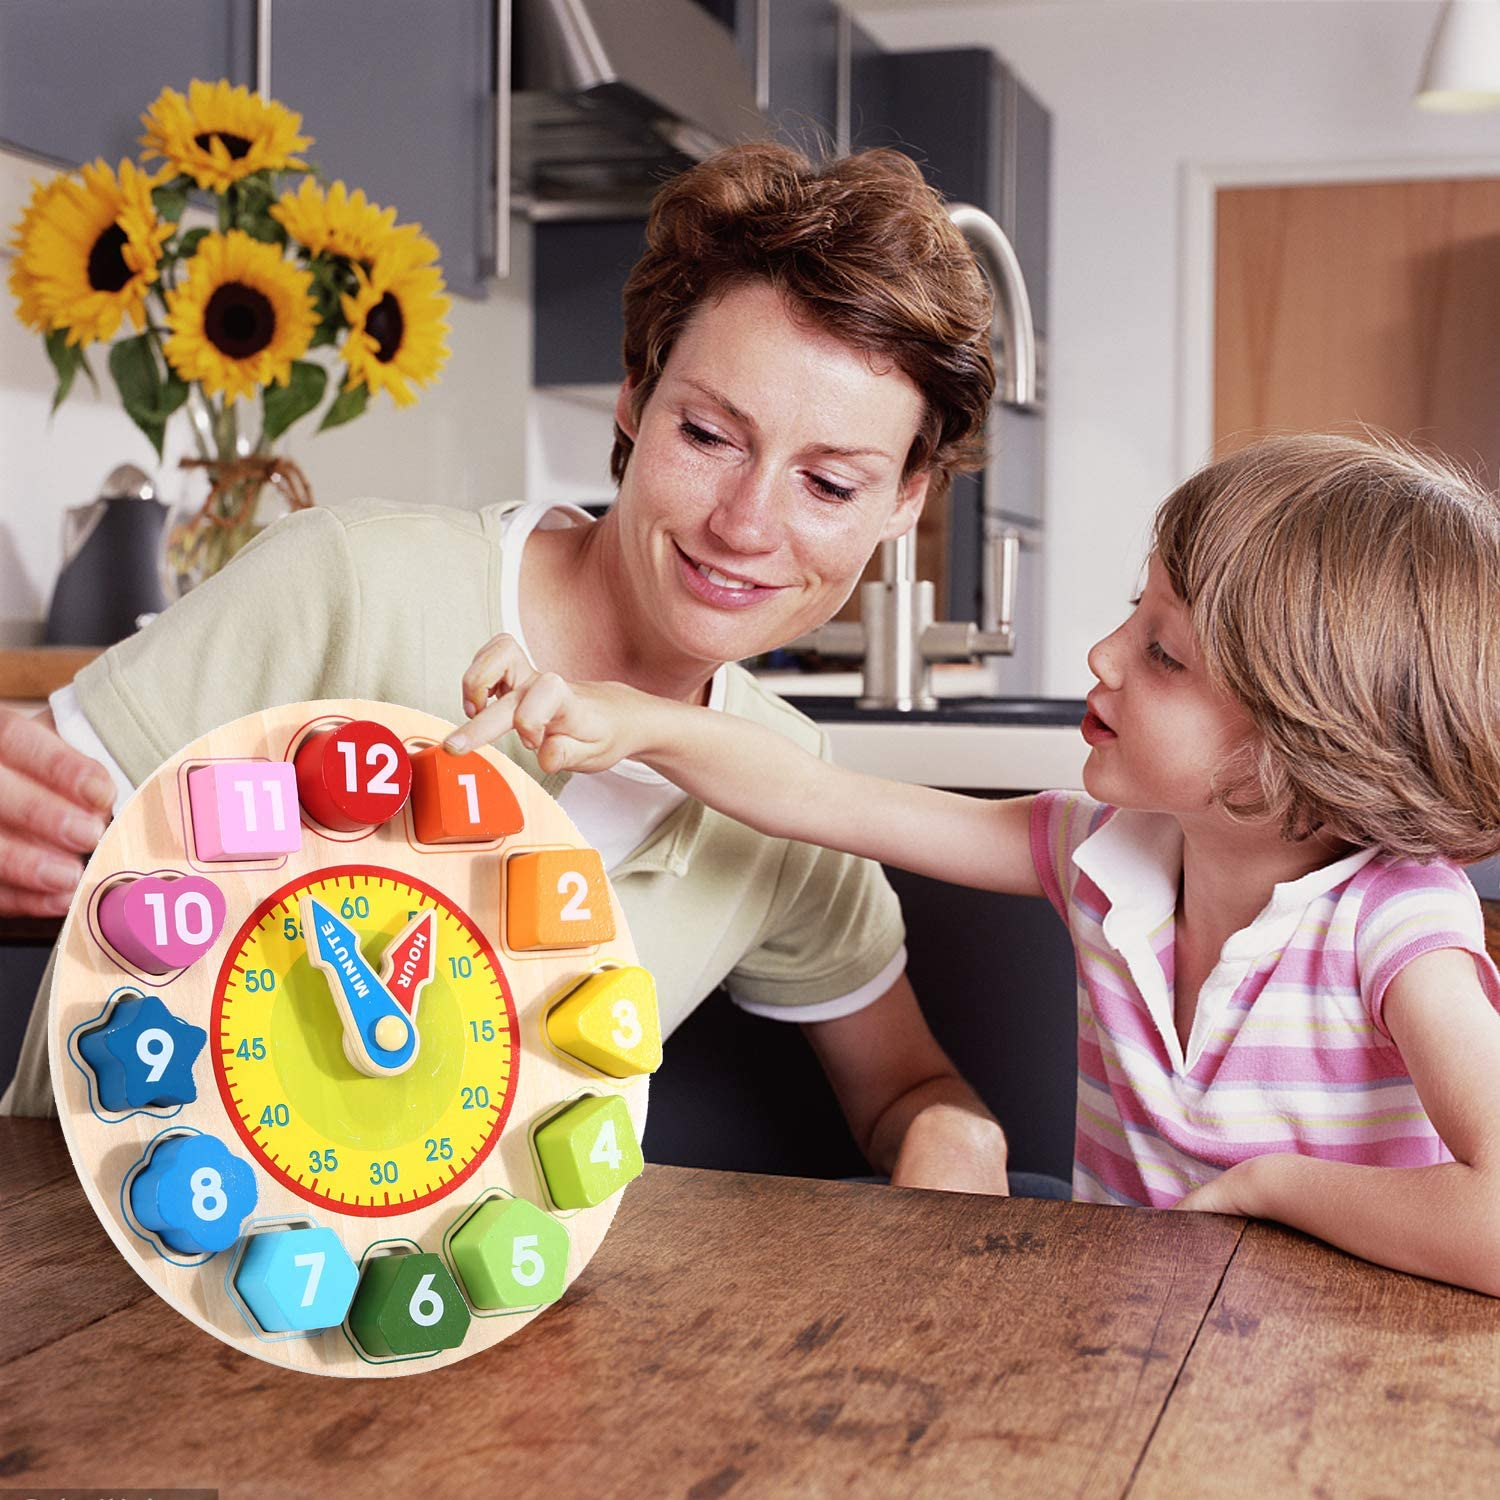 Jamohom Wooden Shape Sorting Clock Teaching Time Number Blocks Early Learning Educational Toy Gifts for Kids